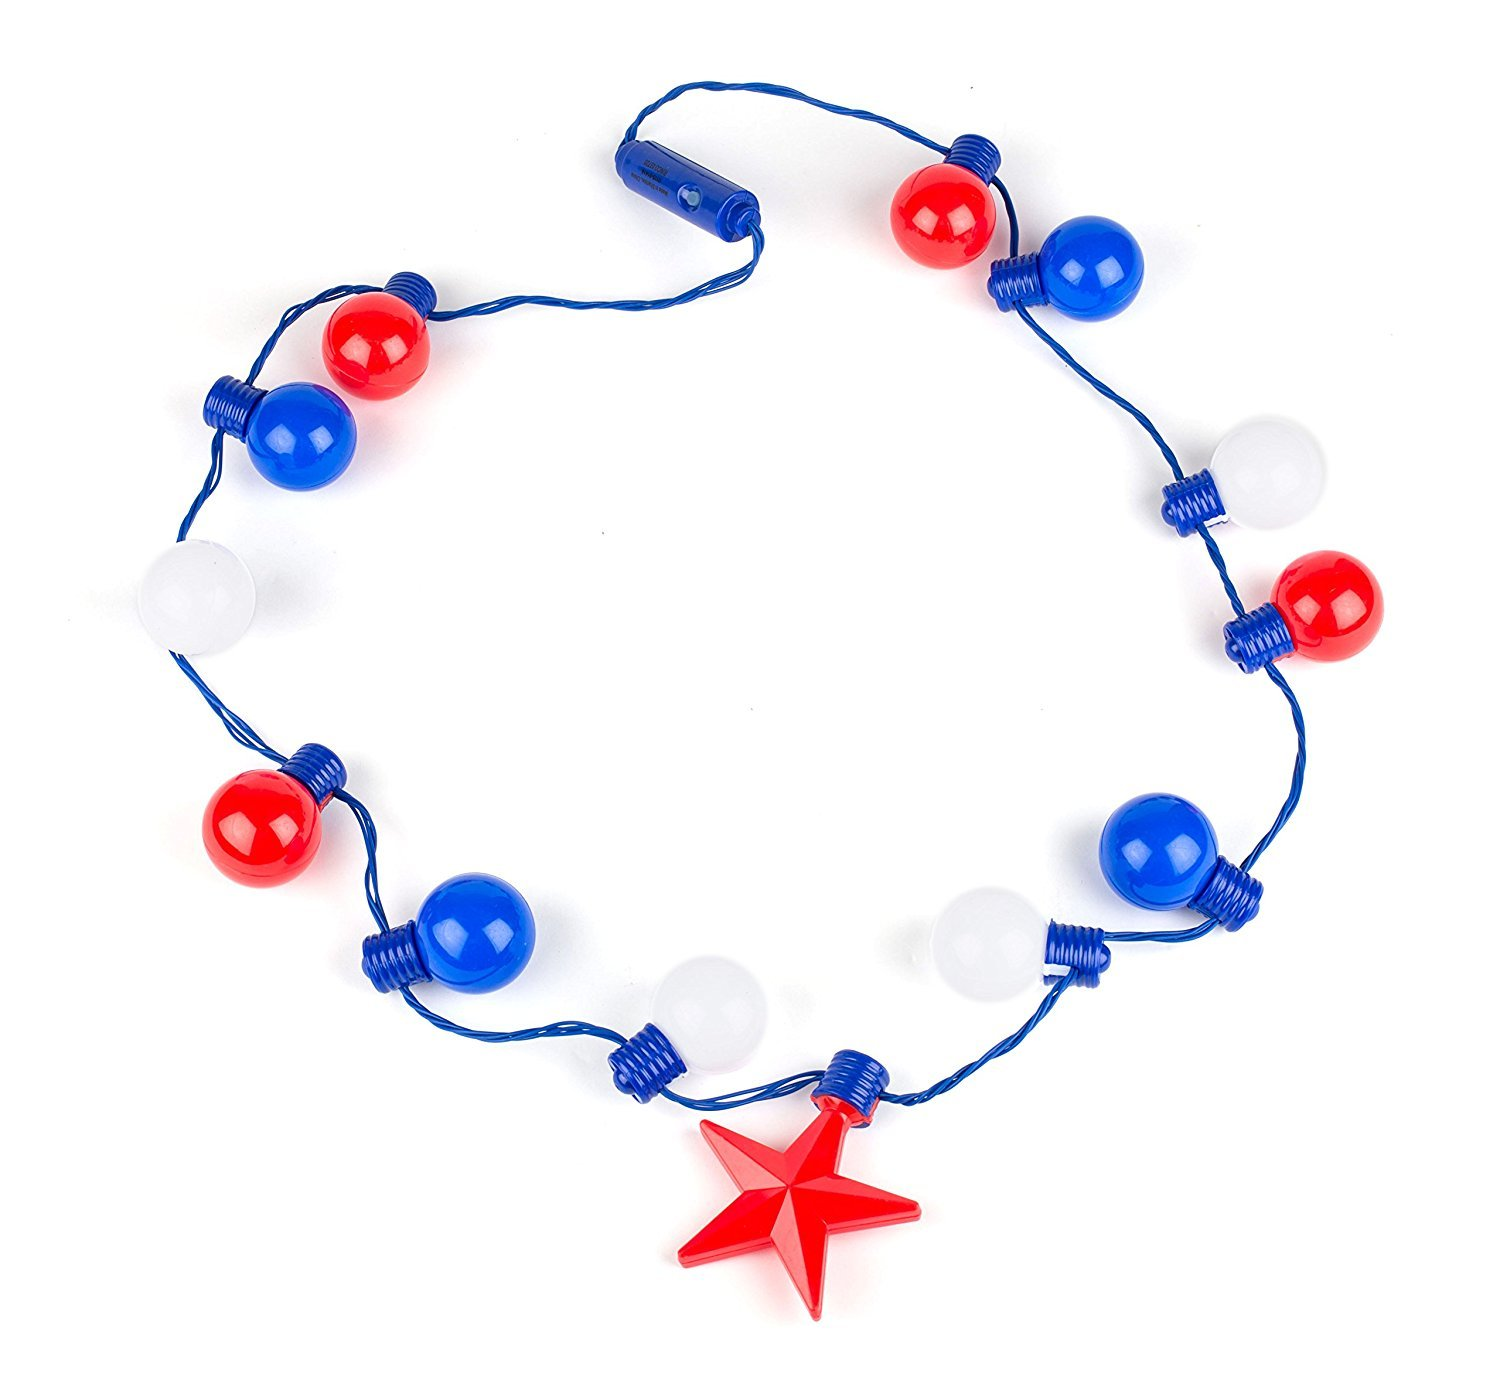 July 4th Independence Day Party Toy Decoration - Patriotic Light up Super Sized Red Blue and White Necklace - 20'' By Neliblu (Pack of 2) by Neliblu (Image #1)